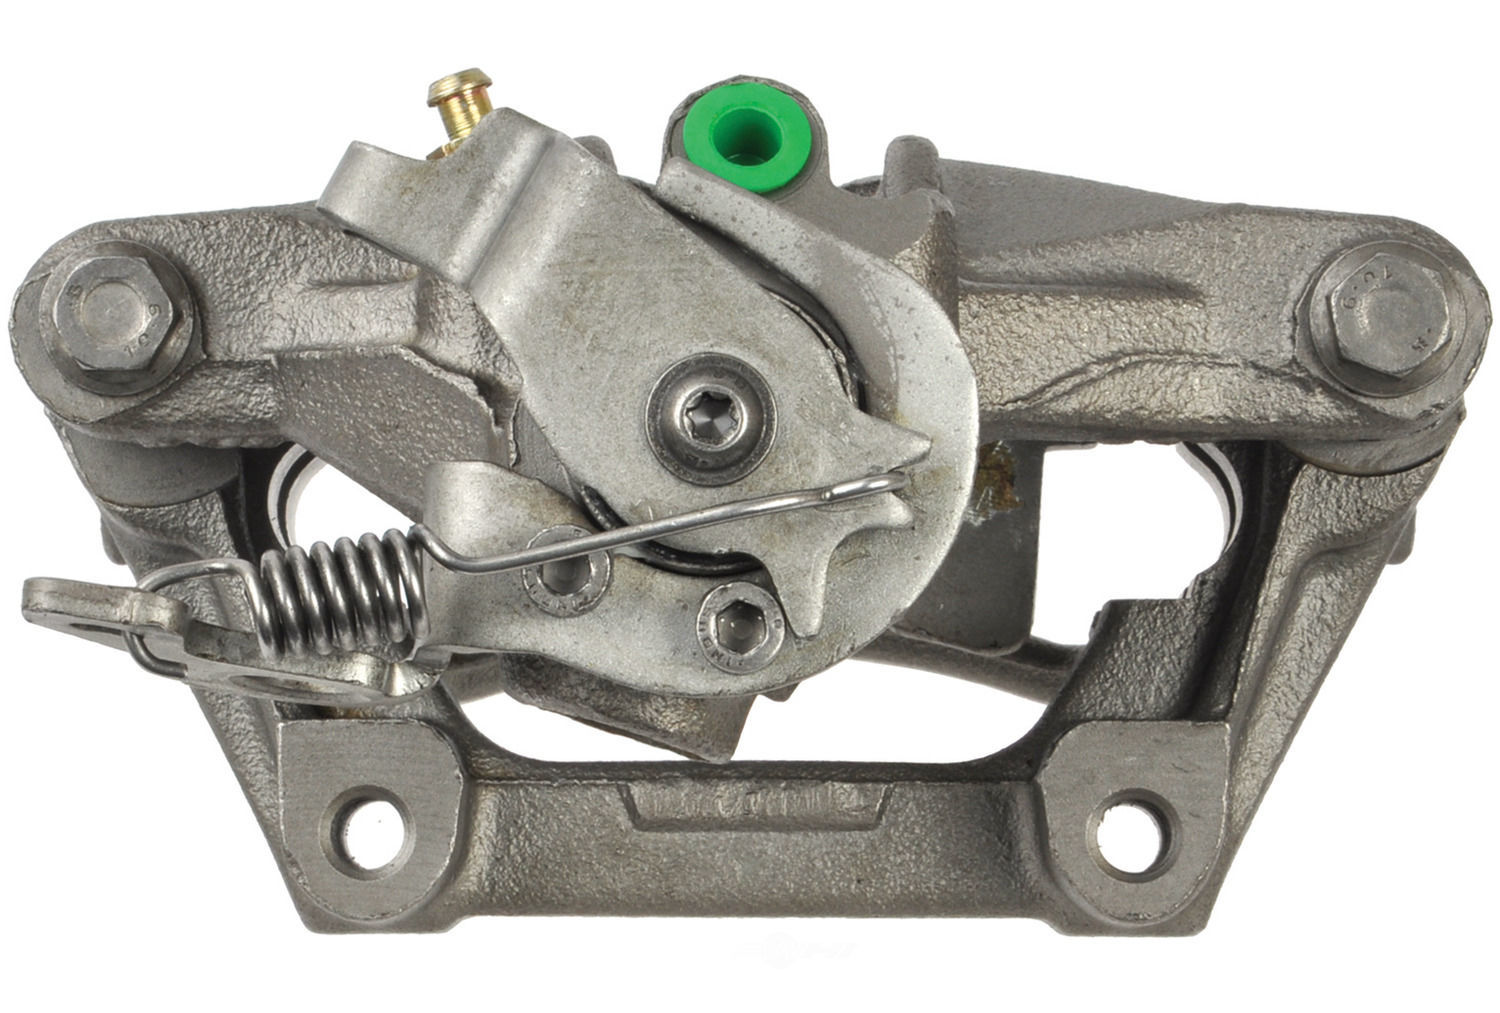 CARDONE/A-1 CARDONE - Remanufactured Friction Choice Caliper w/Bracket (Rear Right) - A1C 19-B3178